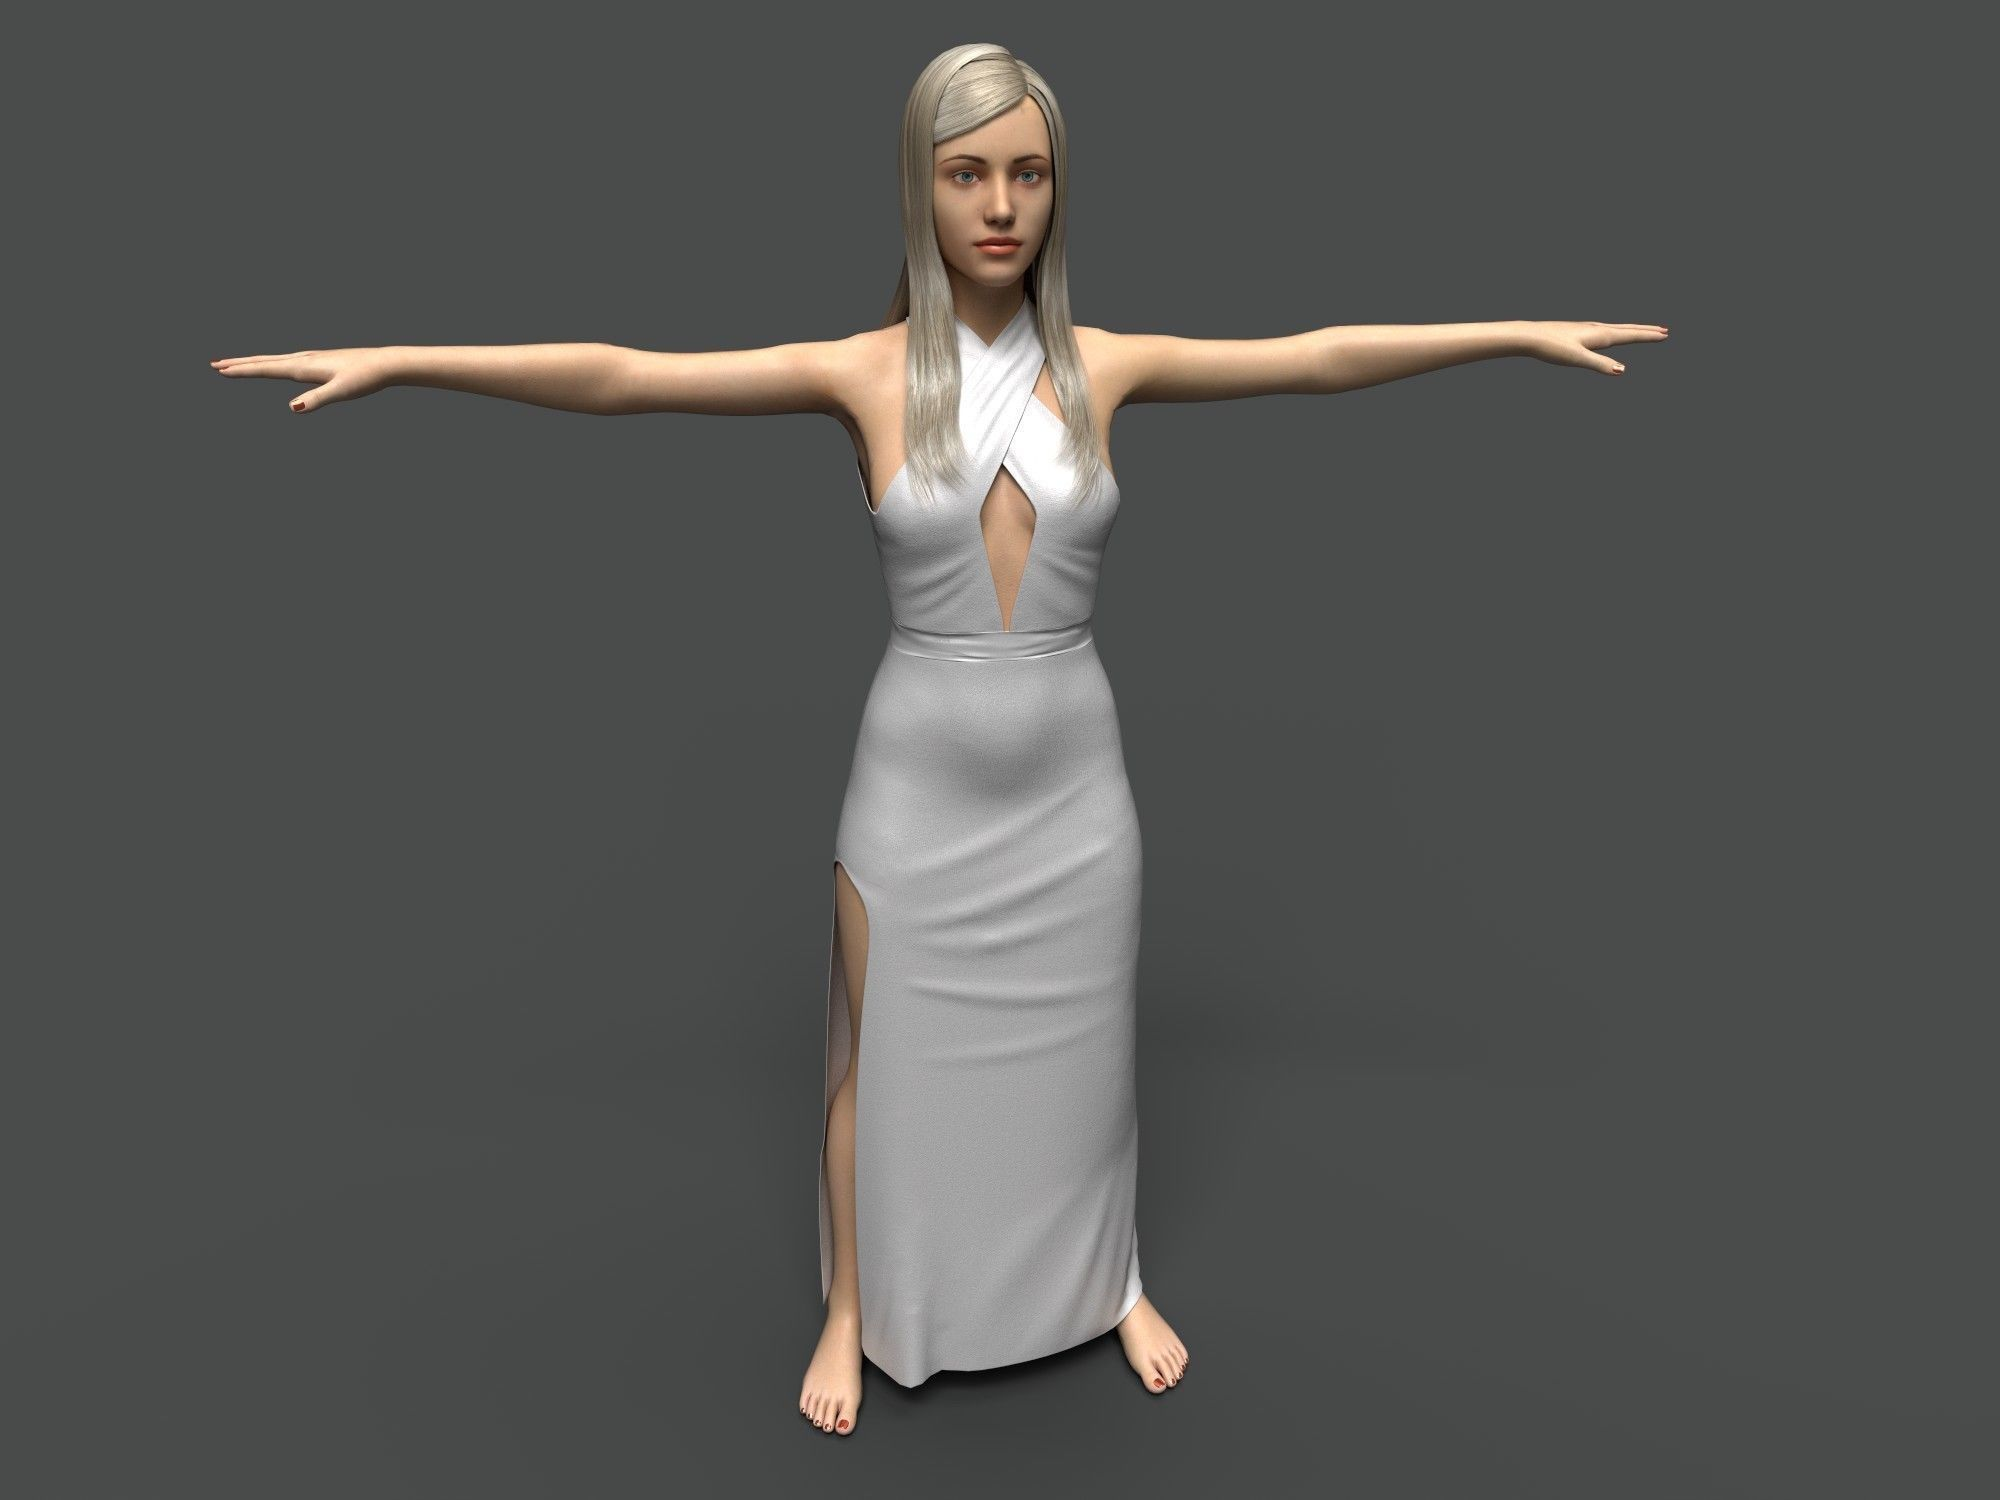 3d models download free - HD 2000×1500